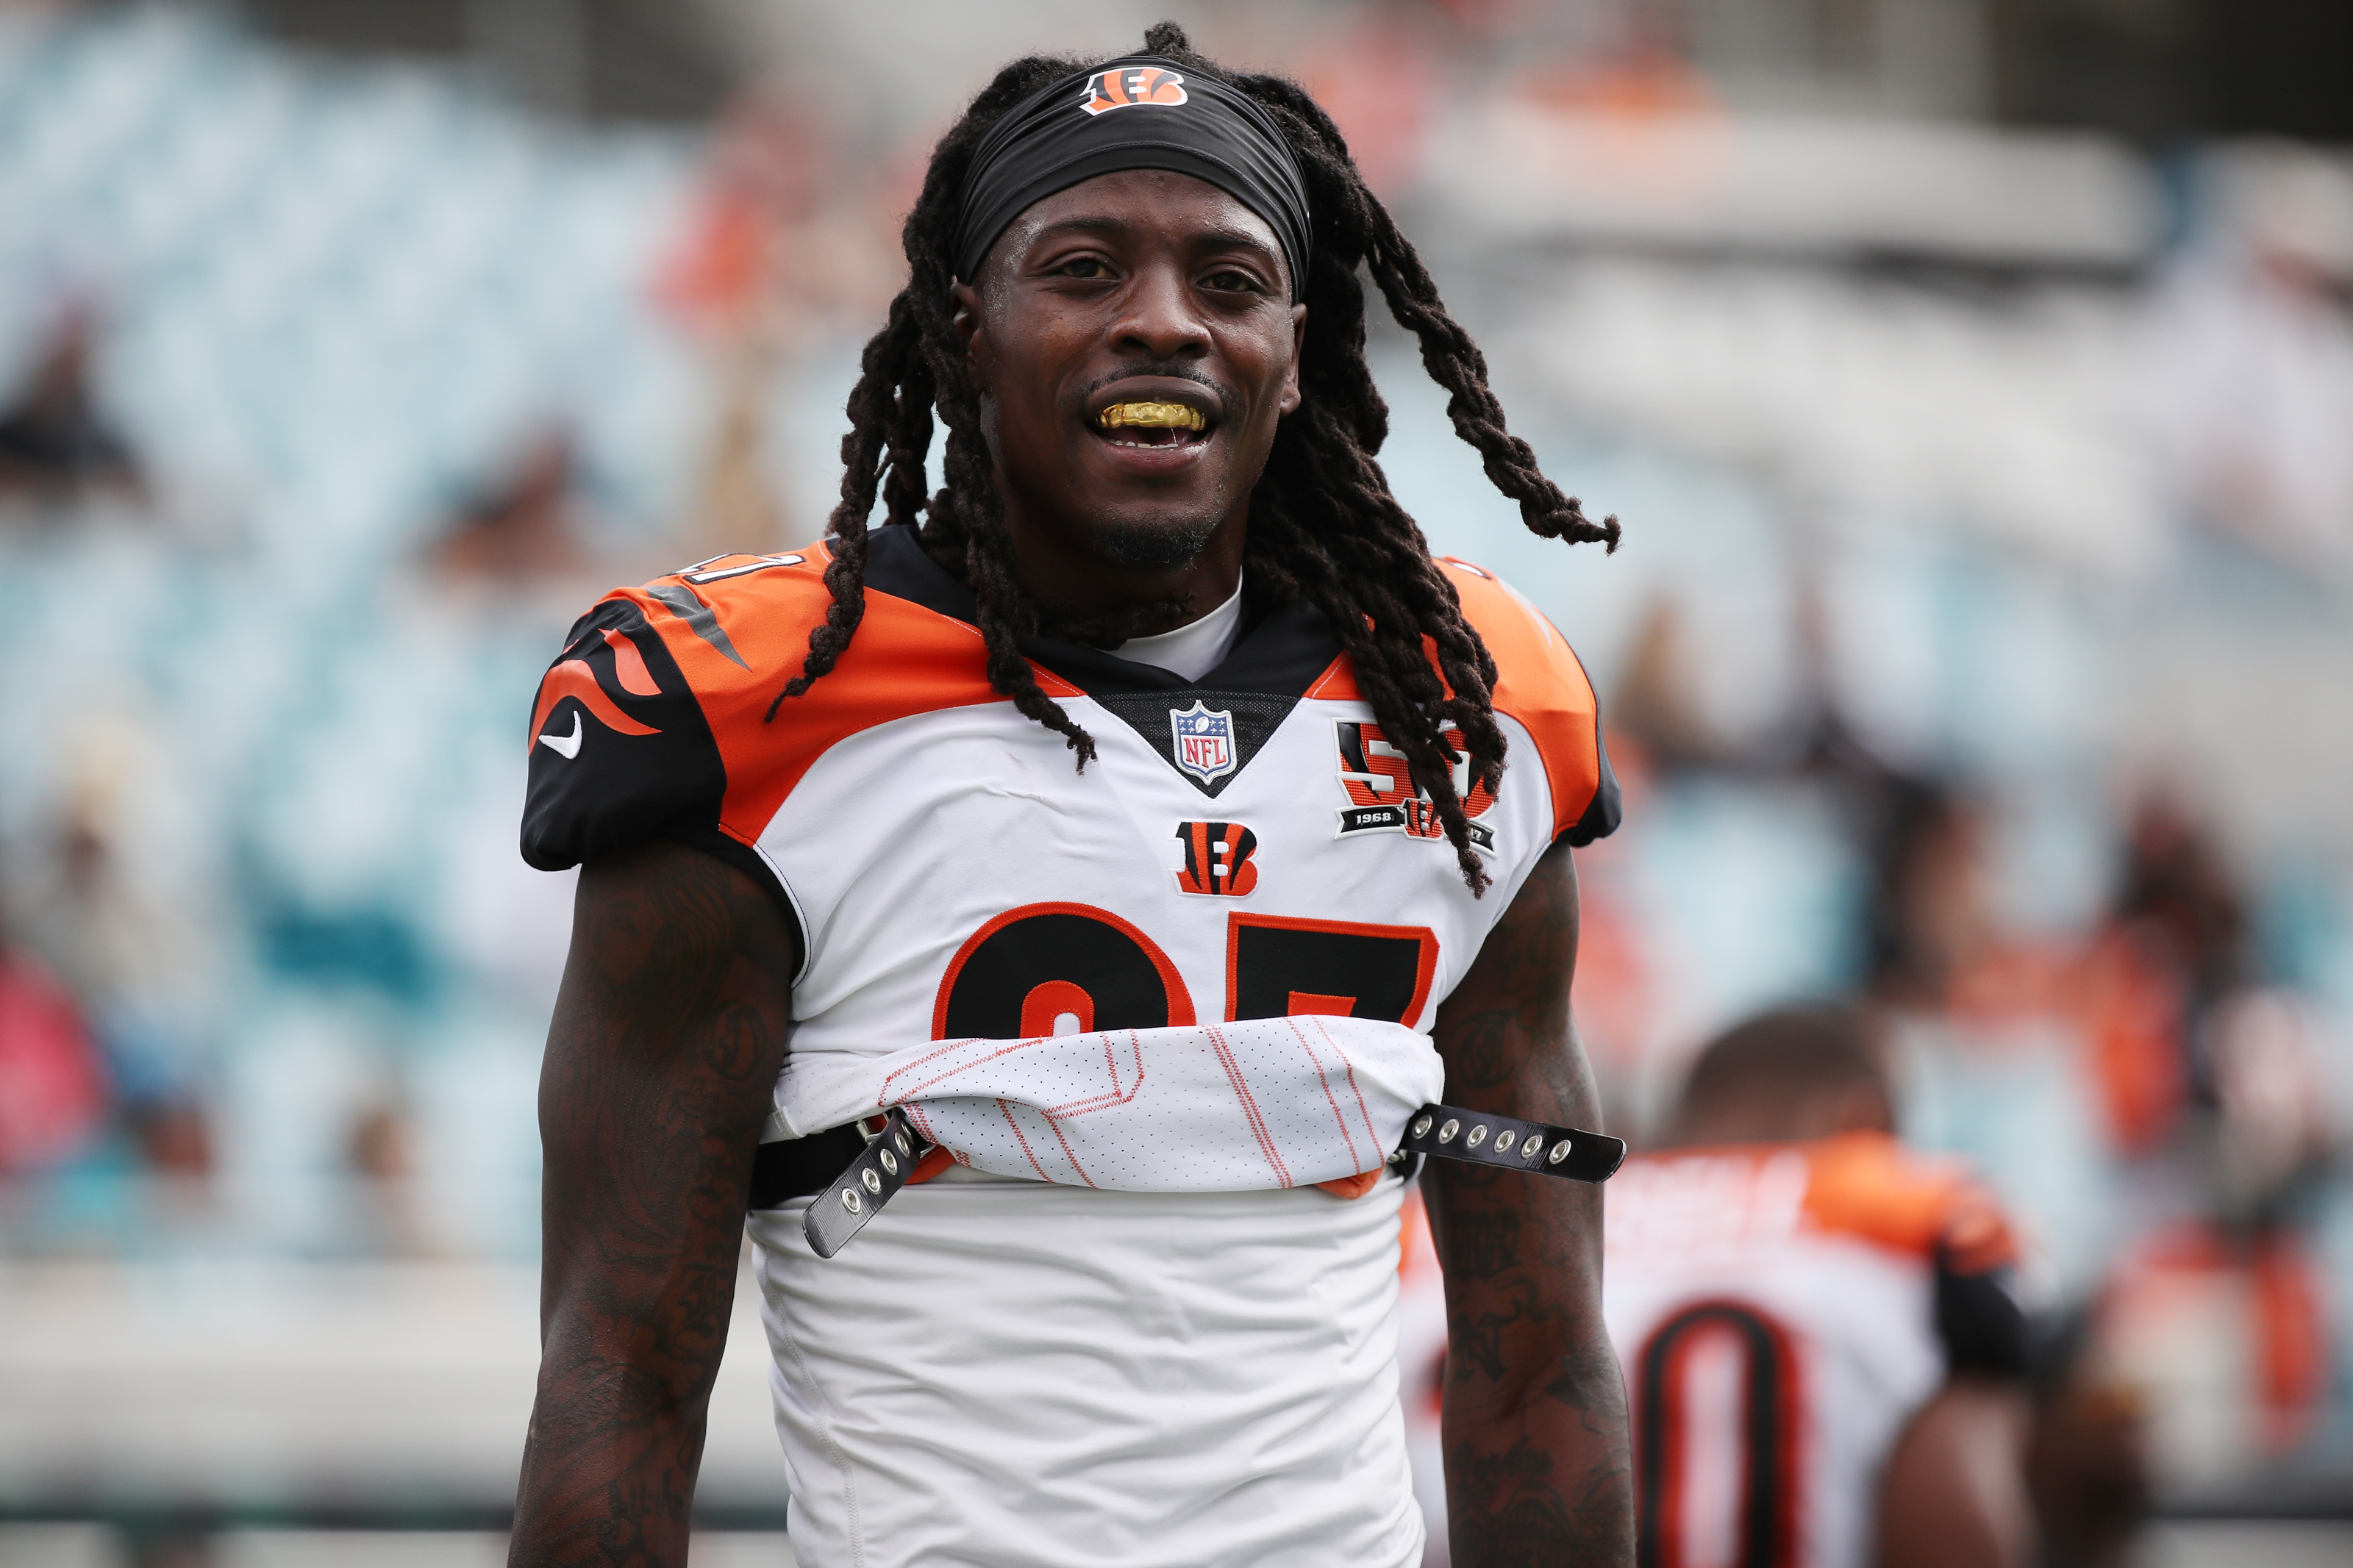 Why Do Bengals Fans Hate Dre Kirkpatrick So Much?